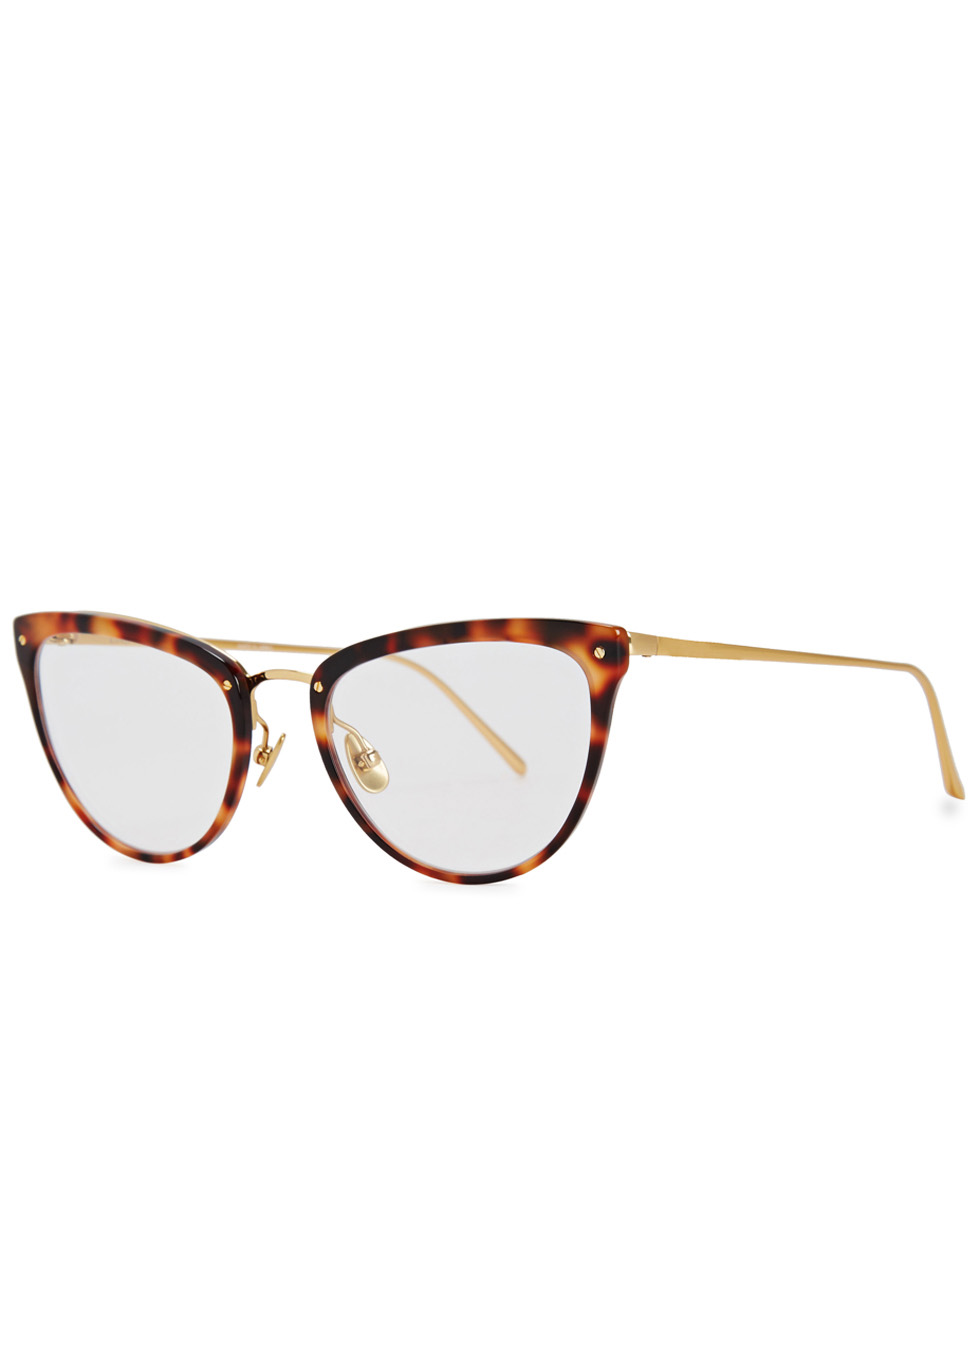 LINDA FARROW LUXE 683 GOLD-PLATED OPTICAL GLASSES